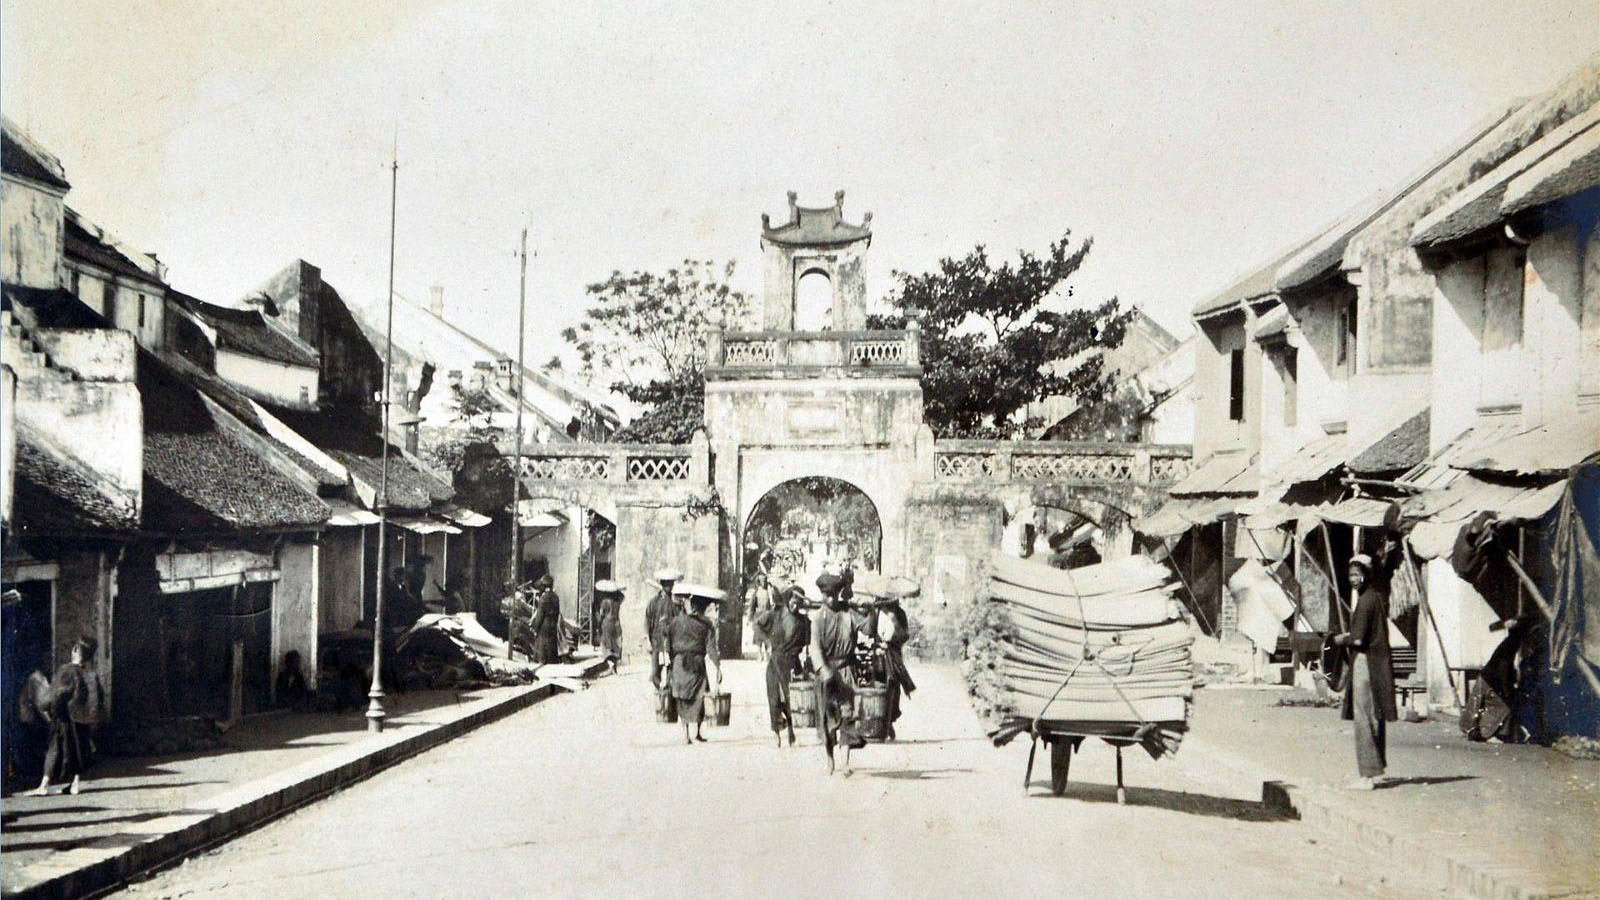 A peak at the past: Night-time economy in pre-modern Hanoi